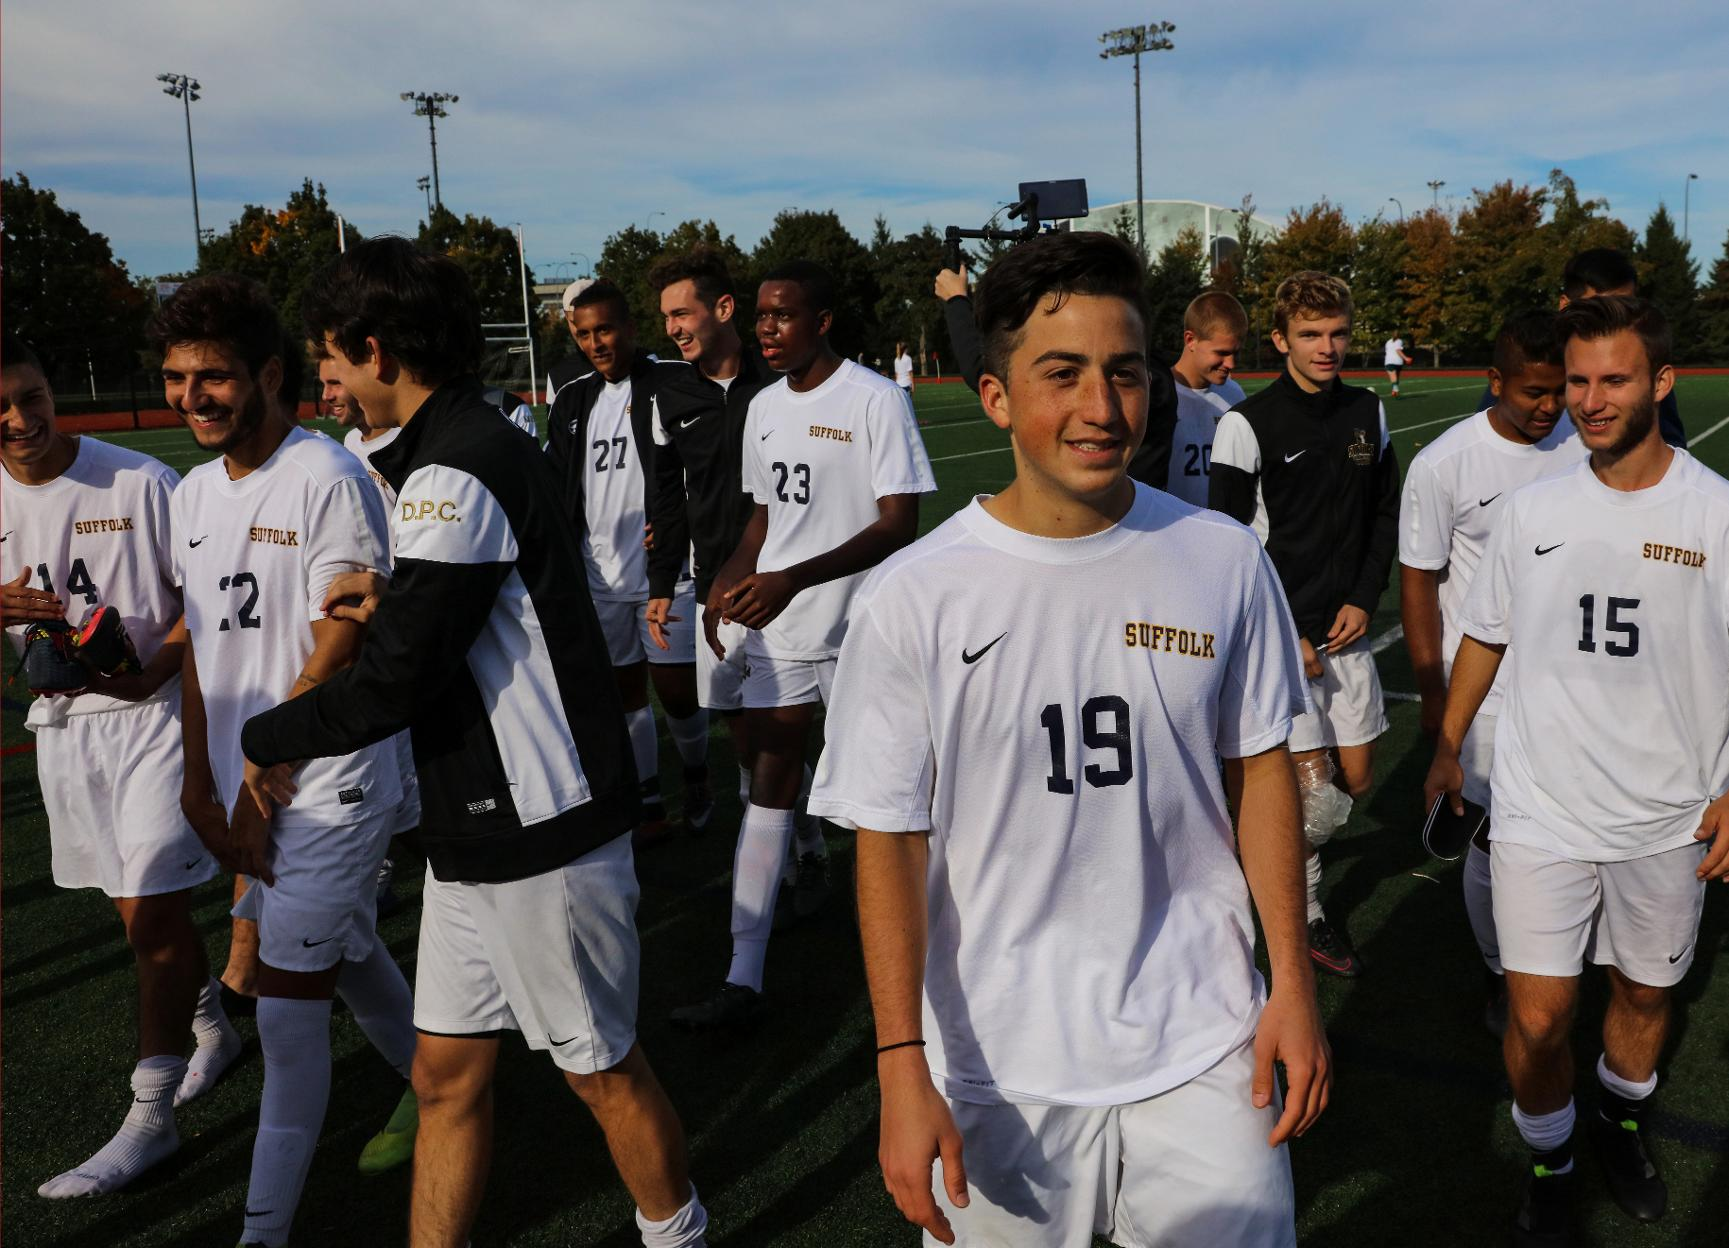 Men's Soccer GNAC Semis Showdown at Saint Joseph's on Tap Tuesday